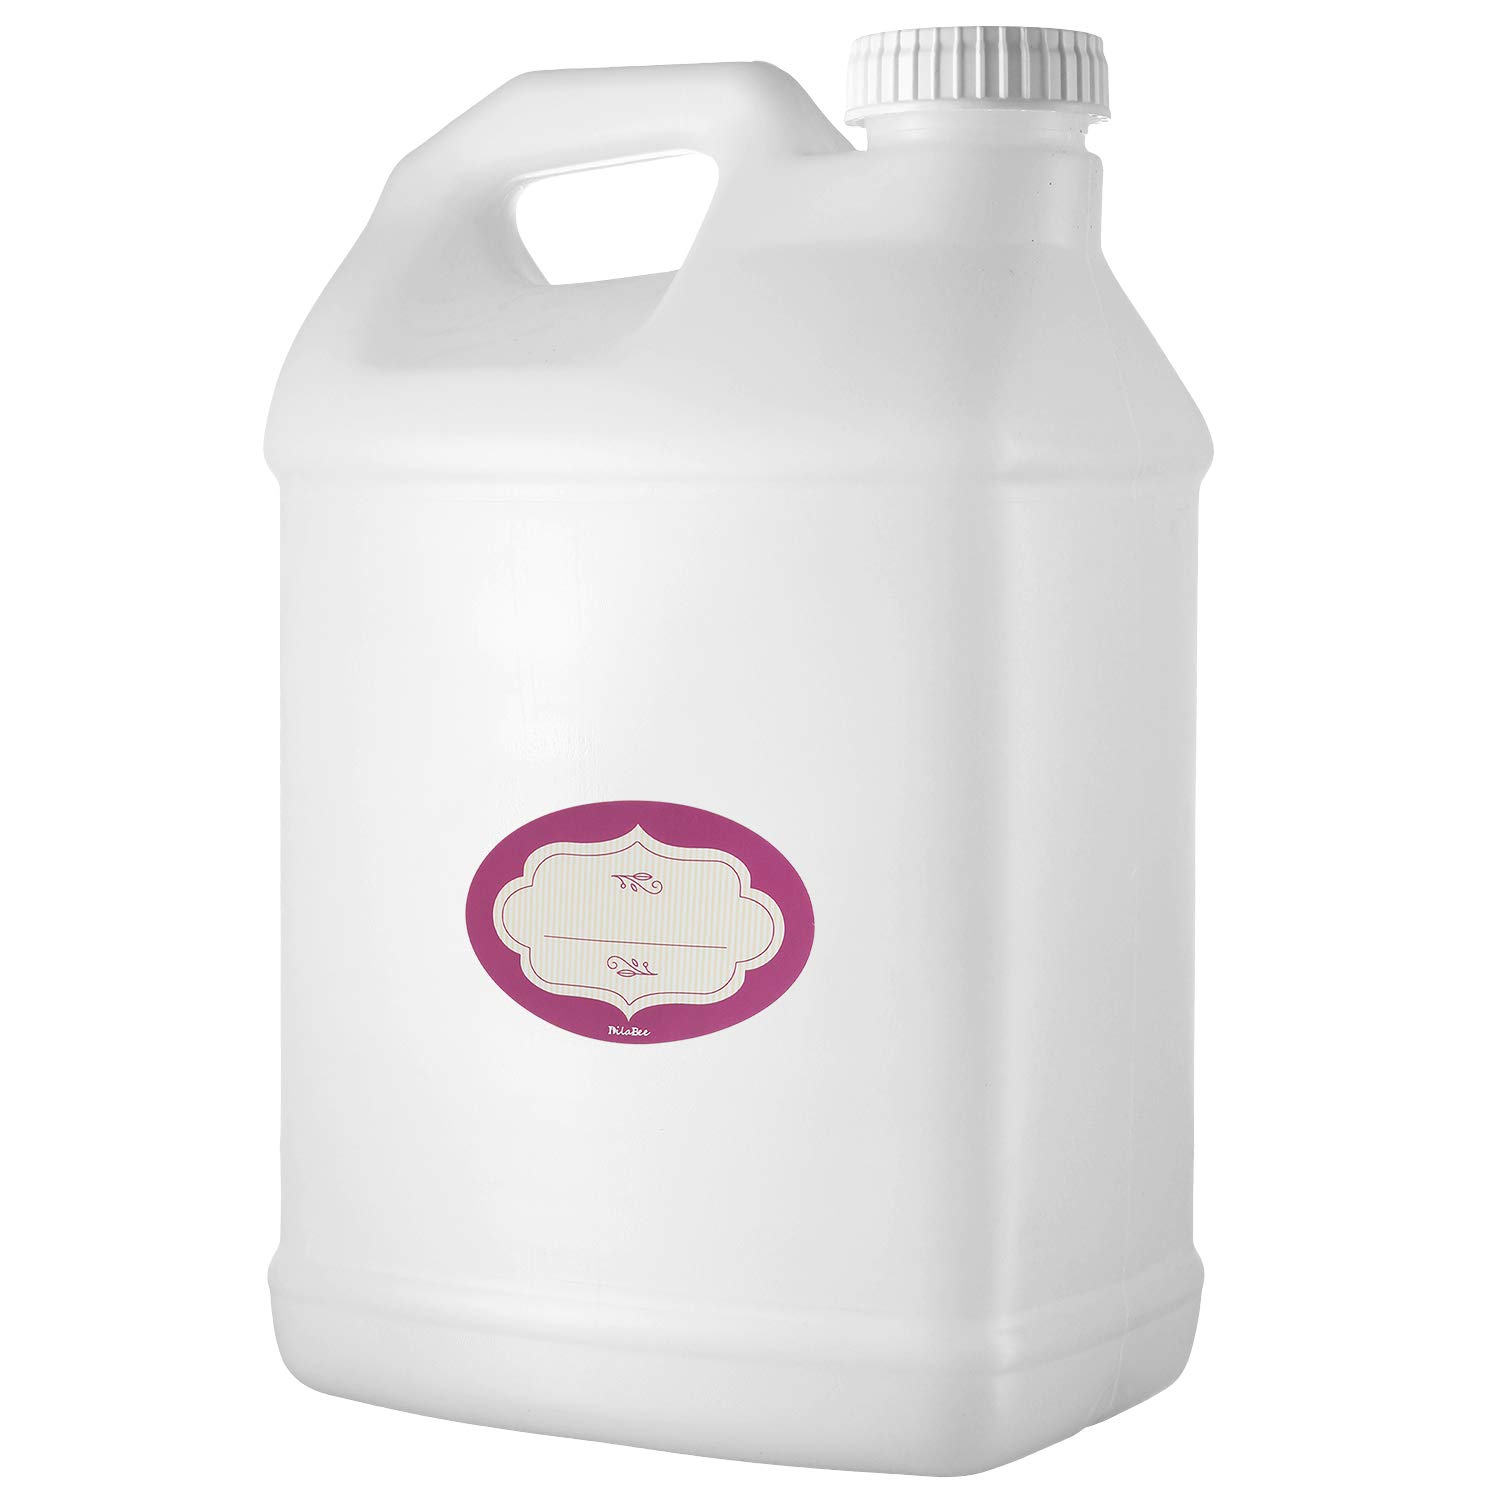 2.5 Gallon Natural F-Style Plastic Jug – 10 Quart Large Heavy-Duty Empty Container - with Airtight Pressure Sensitive Lids and Labels – Reusable Food-Safe BPA Free HDPE 10-Liter Water Bottle